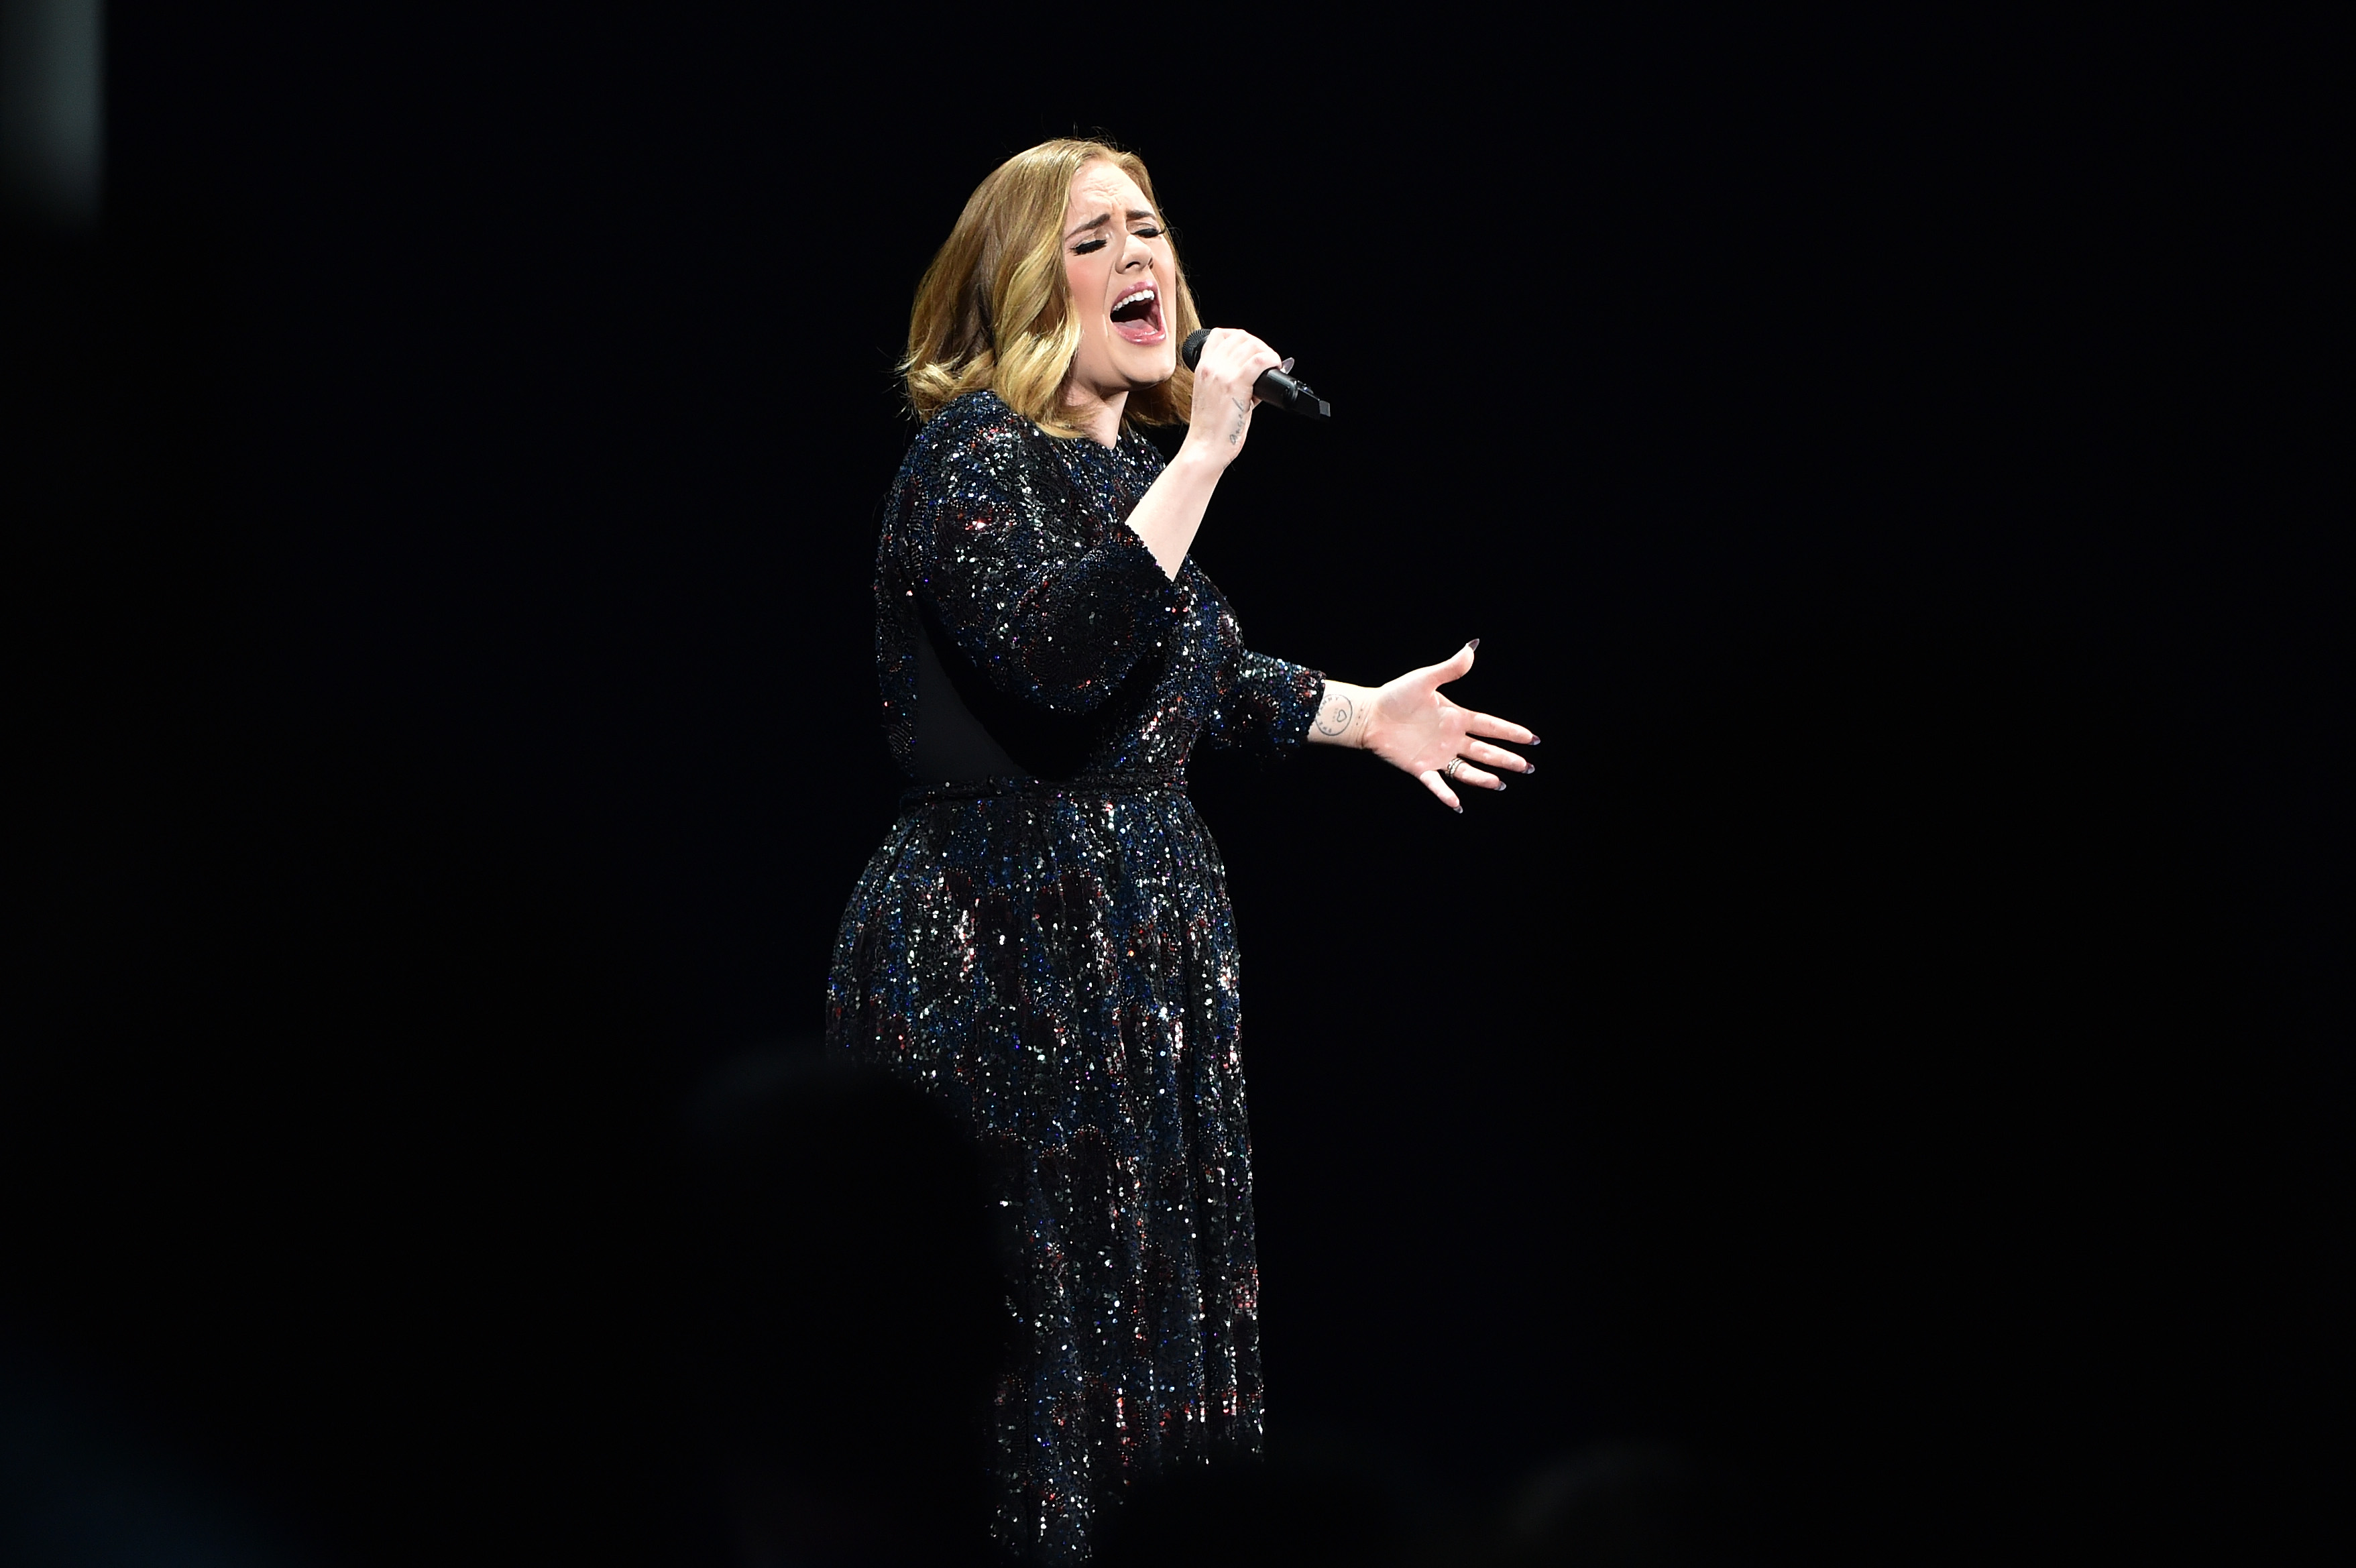 Adele performs at Genting Arena on March 29, 2016 in Birmingham, England. (Photo by Gareth Cattermole/Getty)